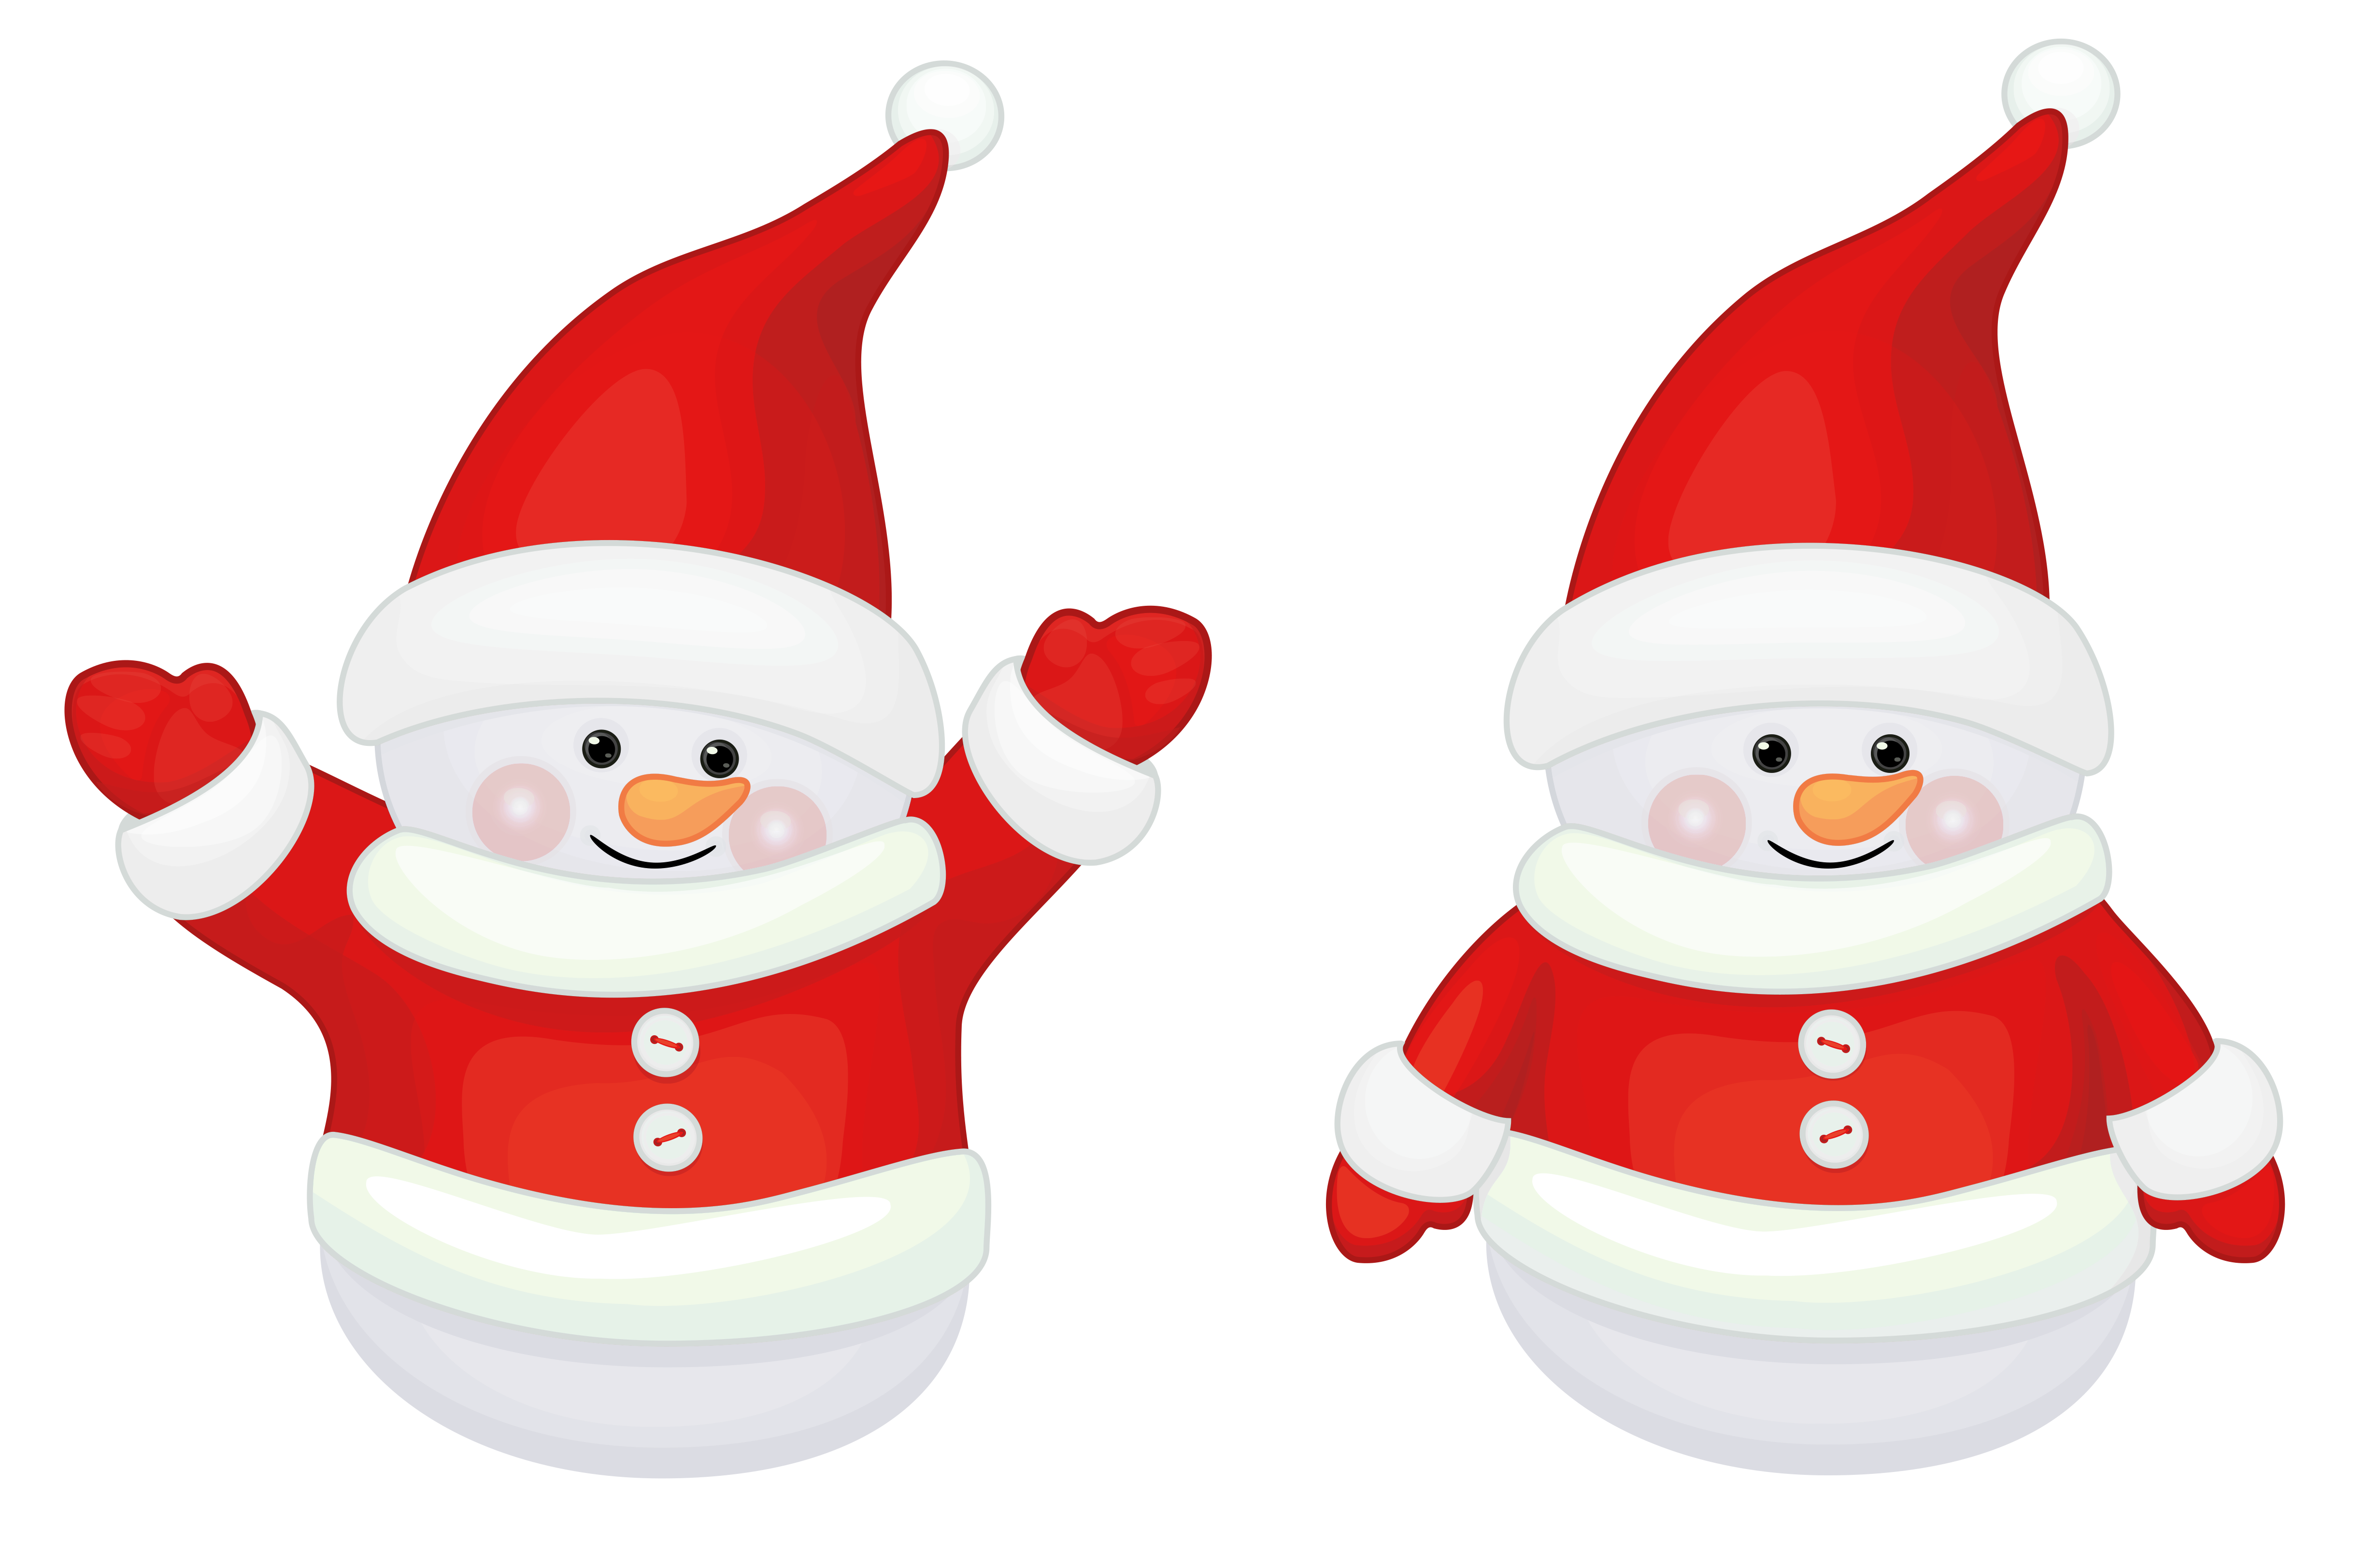 Youtube clipart cute. Transparent red santa claus